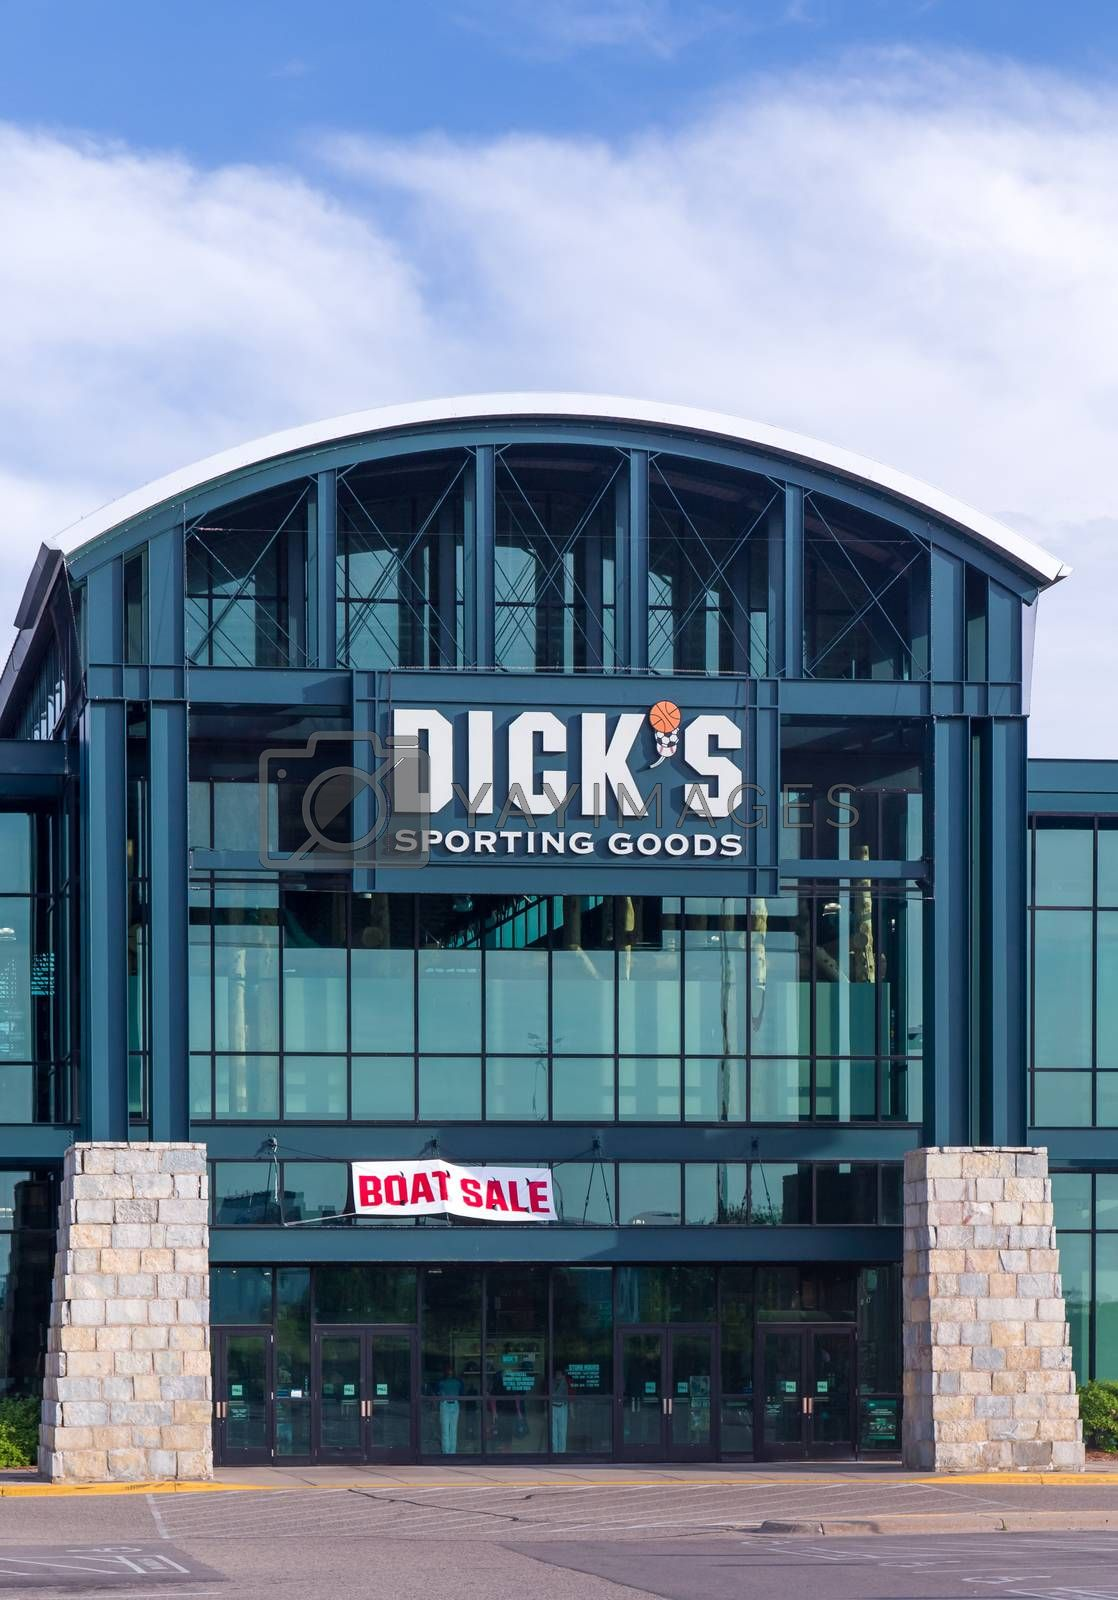 RICHFIELD, MN/USA - MAY 30, 2016: Dick's Sporting Goods exterior. Dick's Sporting Goods, Inc. is a Fortune 500 American corporation in the sporting goods and retail industries.